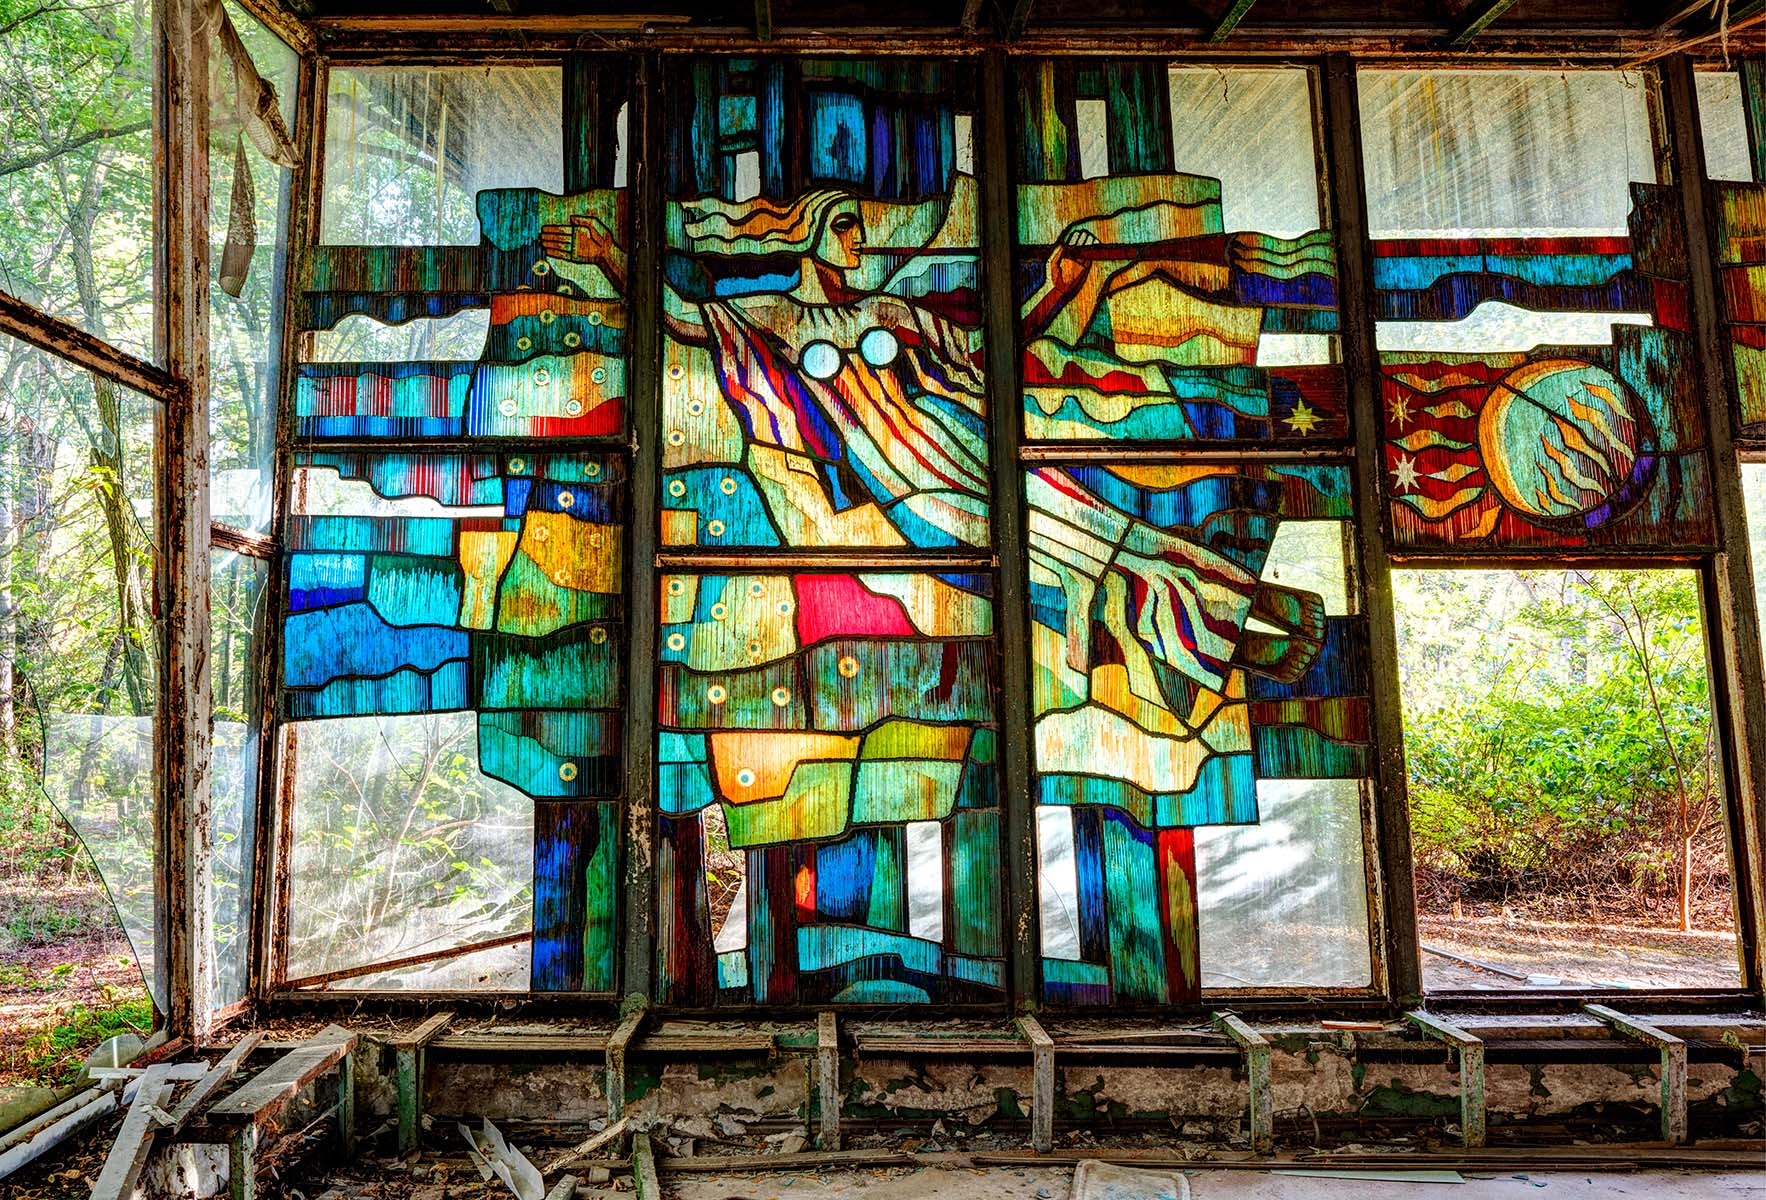 This would have been a nice cafe on the waterfront with vibrant stained glass windows. Despite its tragic fate, Pripyat was a utopian new town designed to house the skilled workers and scientists at the power plant. It had excellent leisure and cultural facilities and was set in an area of natural beauty. You can imagine that the people living here would have been happy.